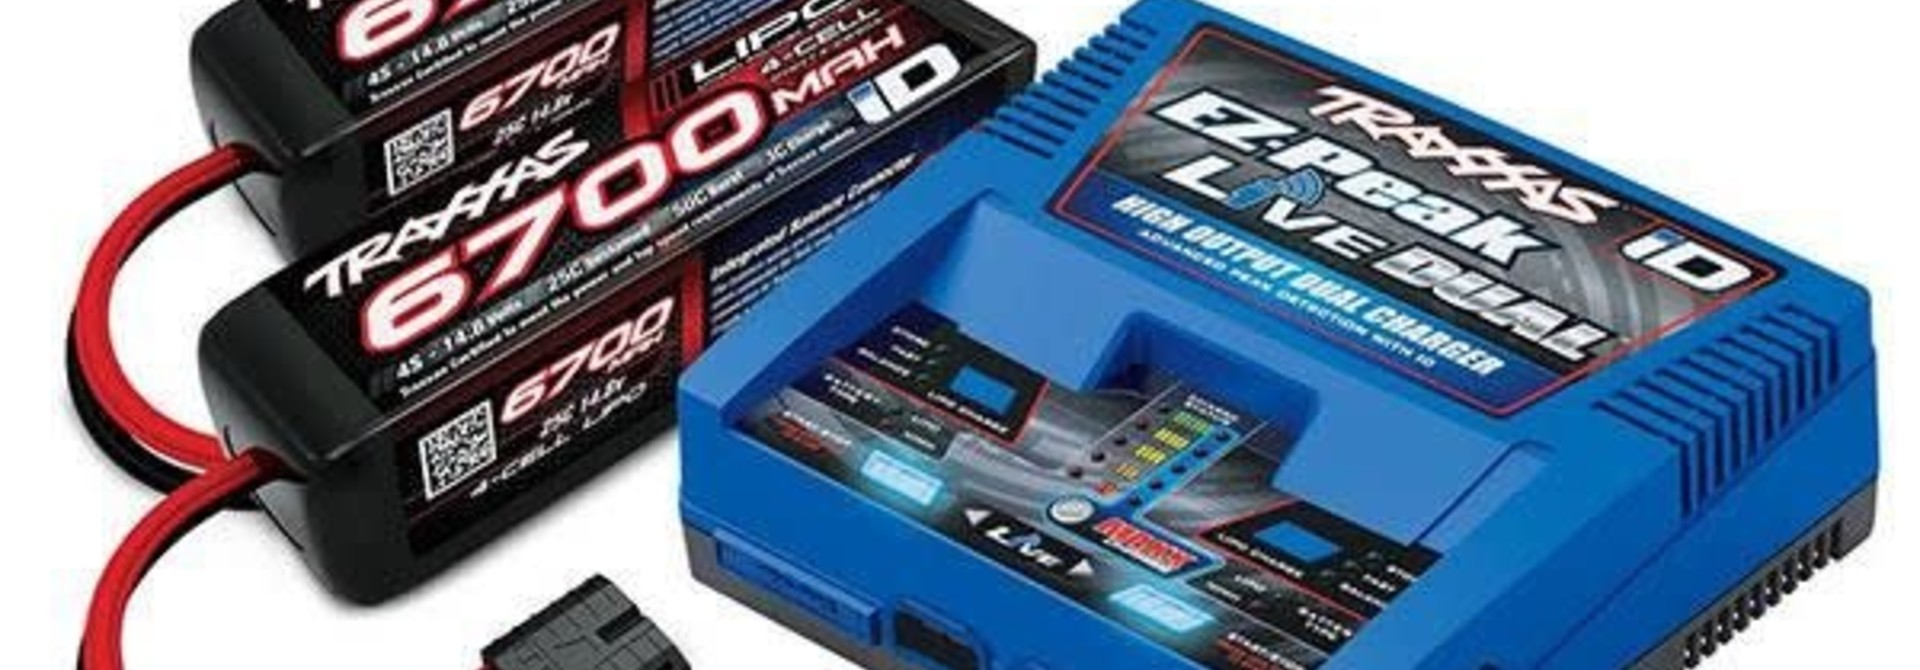 Battery/Charger Completer Pack (Includes #2973 Dual Id Charger (1), #2890X 6700Mah 14.8V 4-Cell 25C Lipo Battery (2))TRX2997G